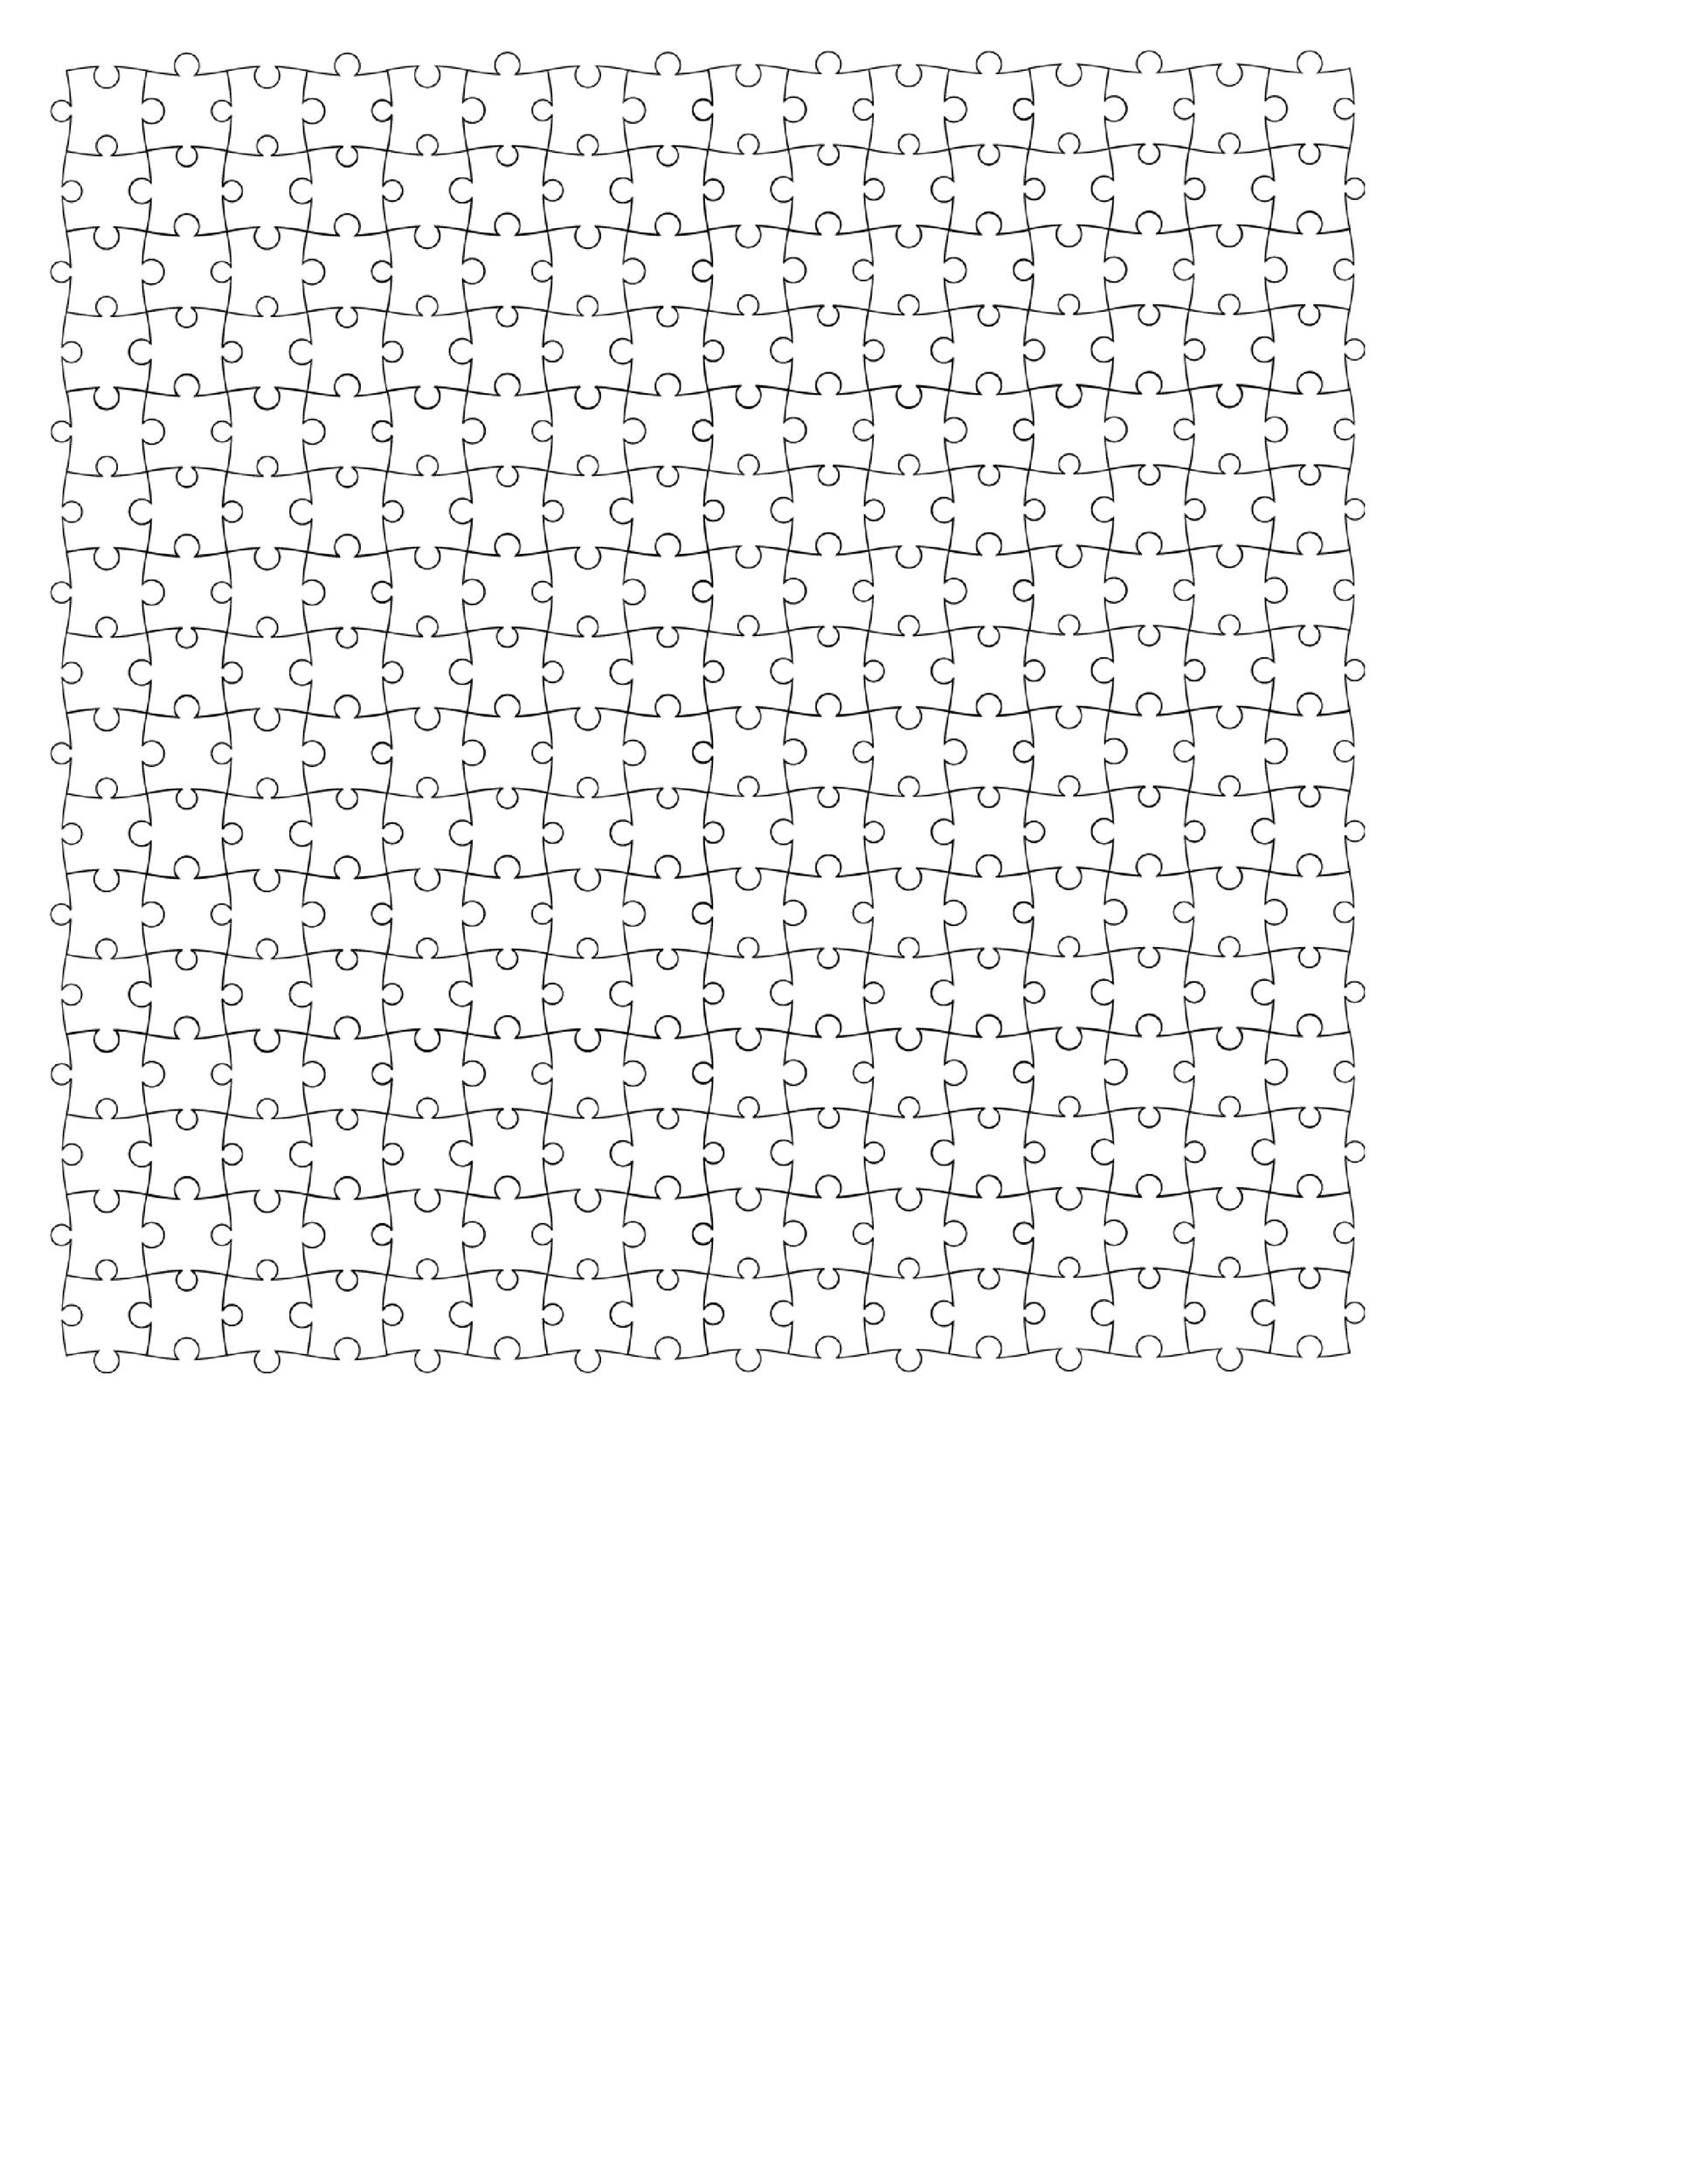 Free puzzle piece template 18